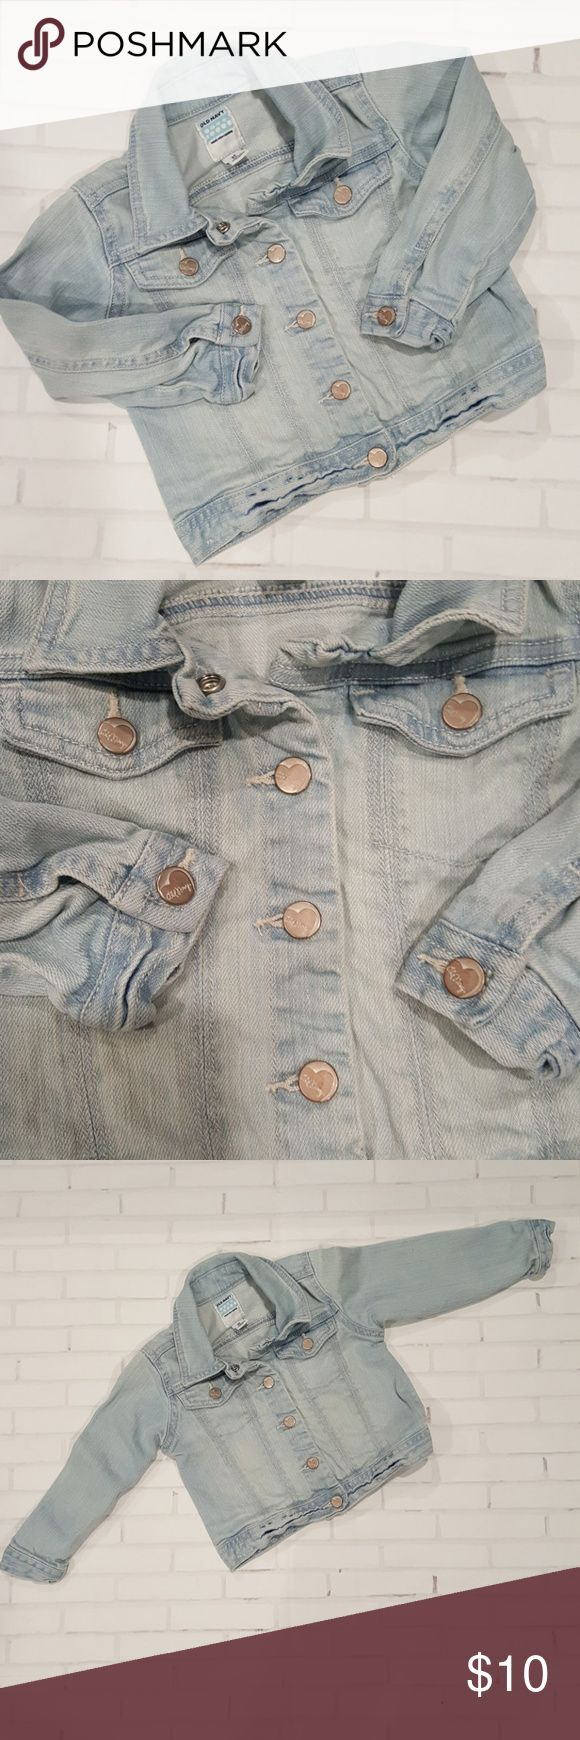 Girls Old Navy Jean Jacket - Size 2T Light wash old navy jean jacket. Button front closure. Old Navy Jackets & Coats Jean Jackets